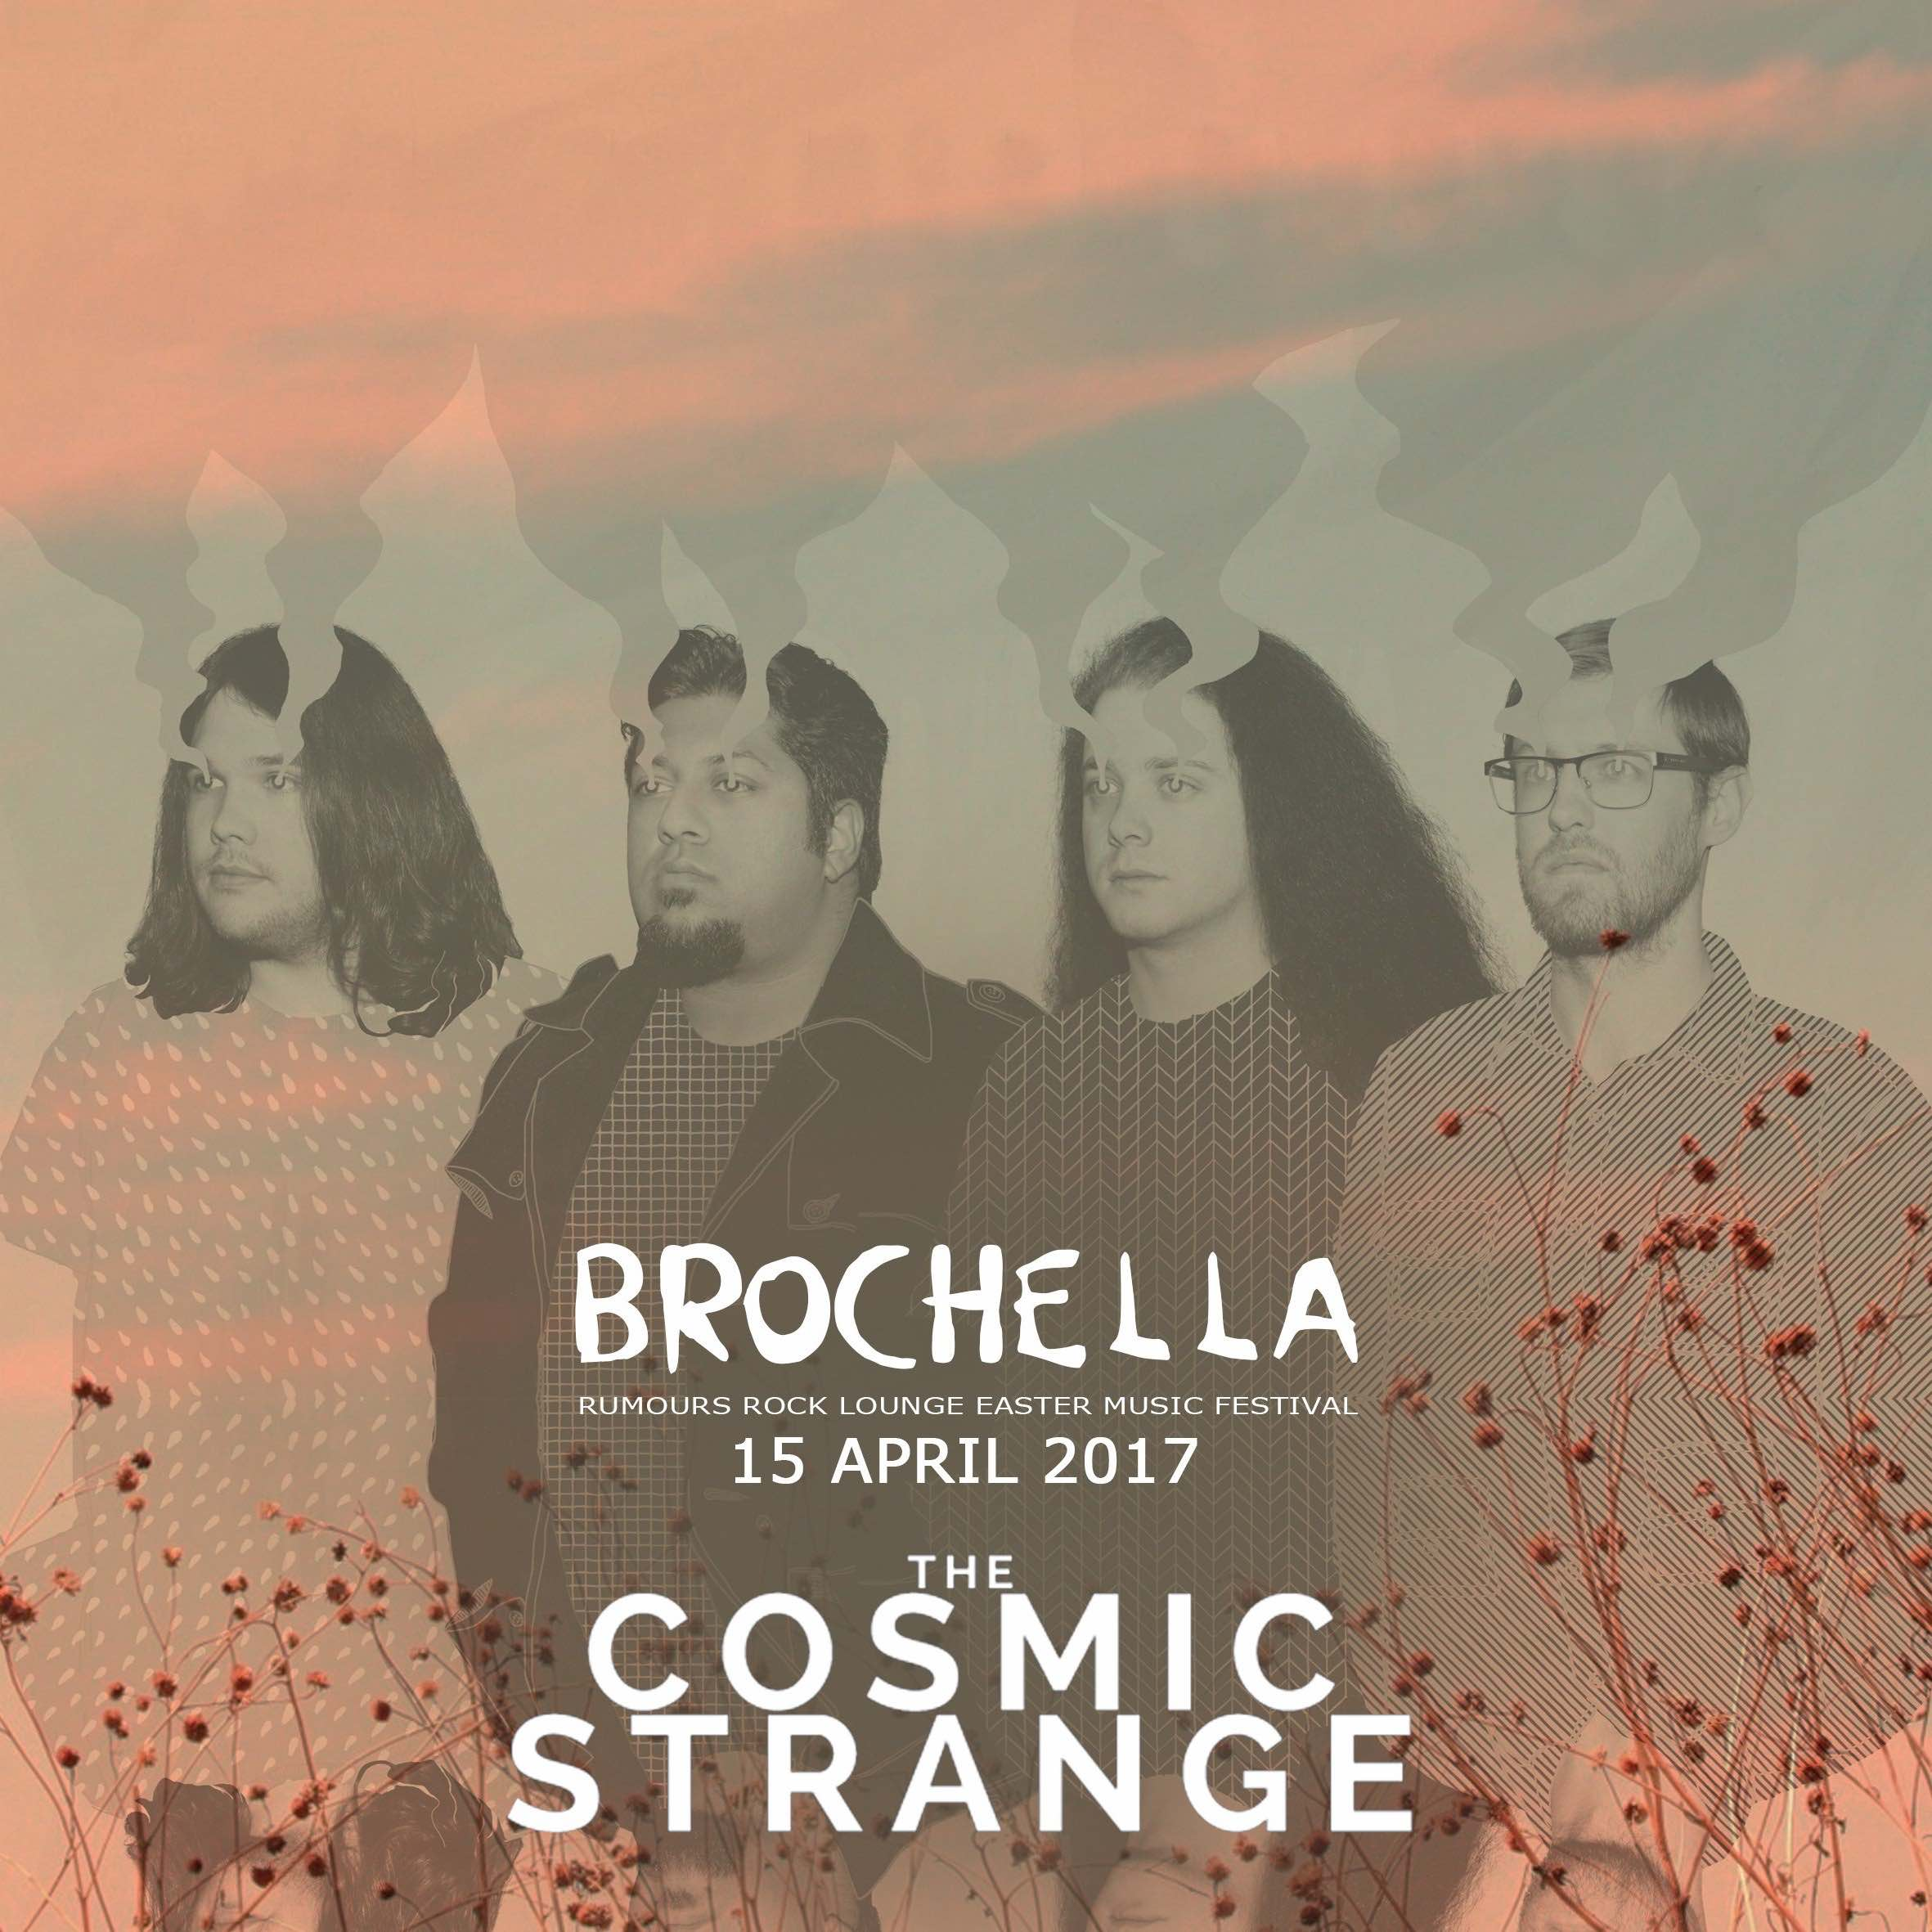 We interview The Cosmic Strange about Brochella Festival